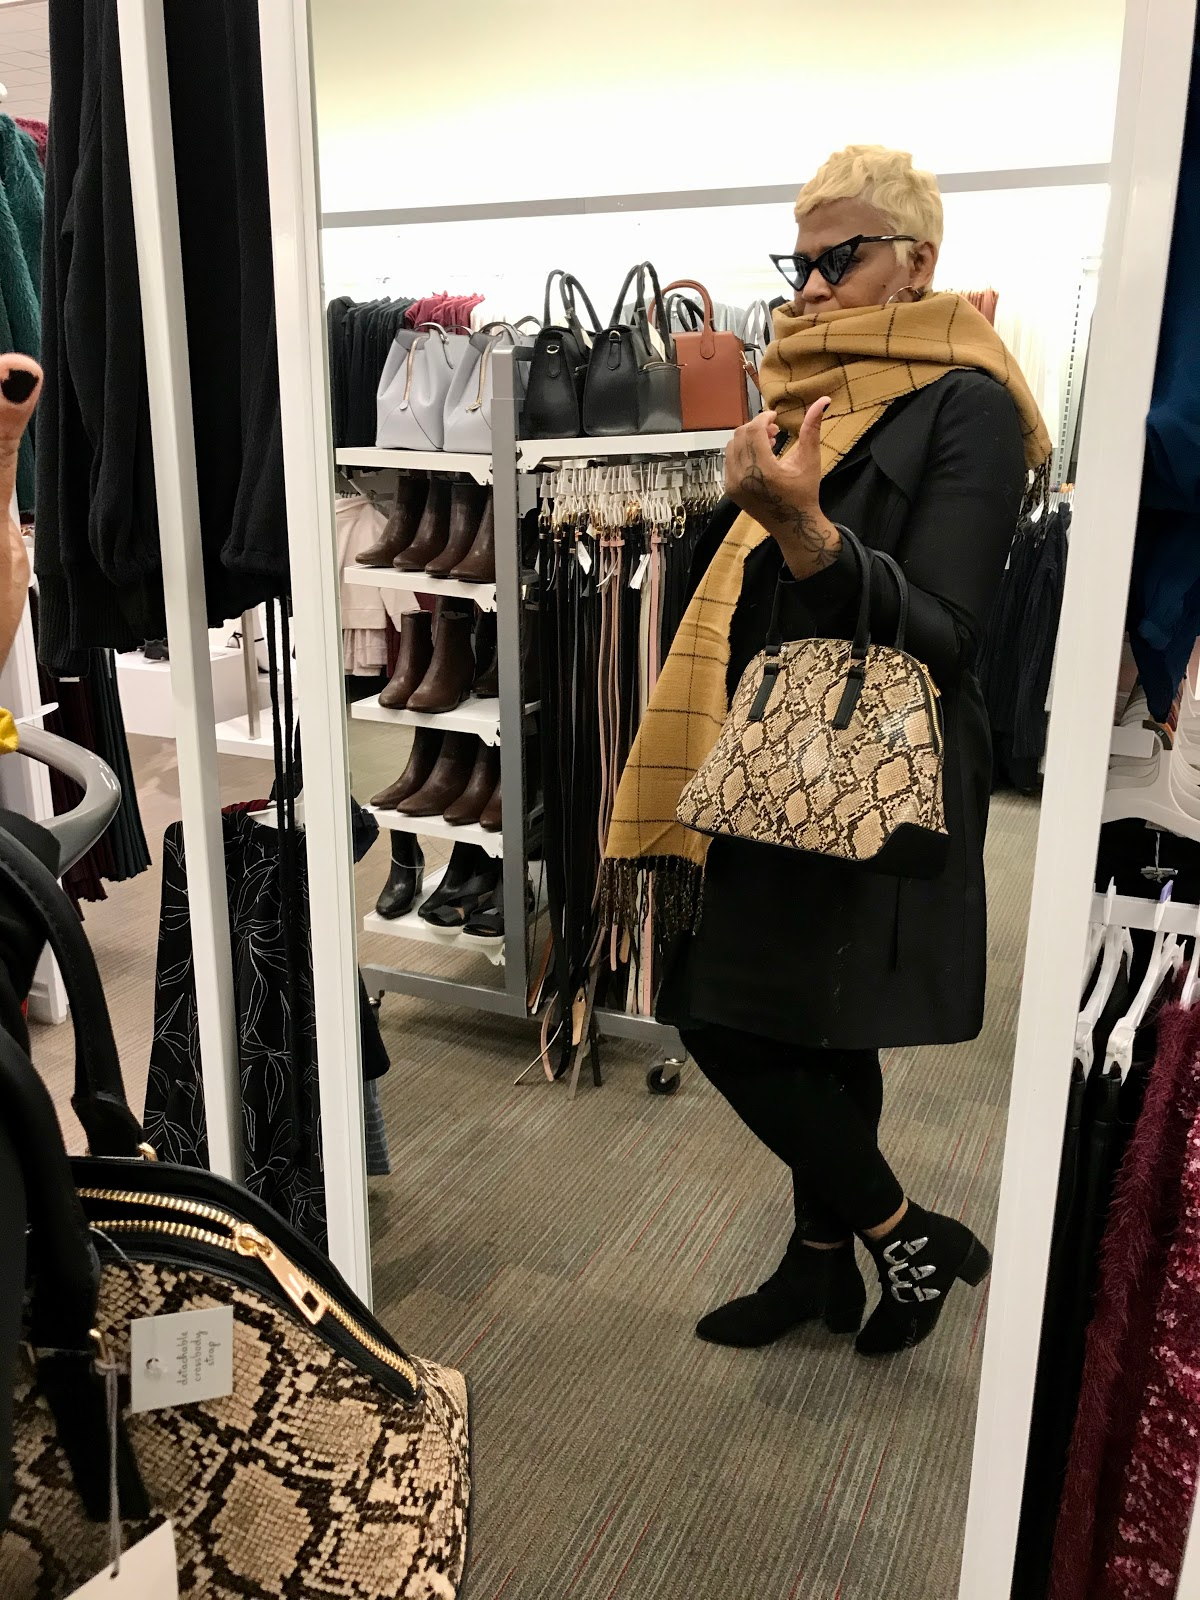 Tangie Bell trying on ore scarves and handbags for the winter at Target. Outfit